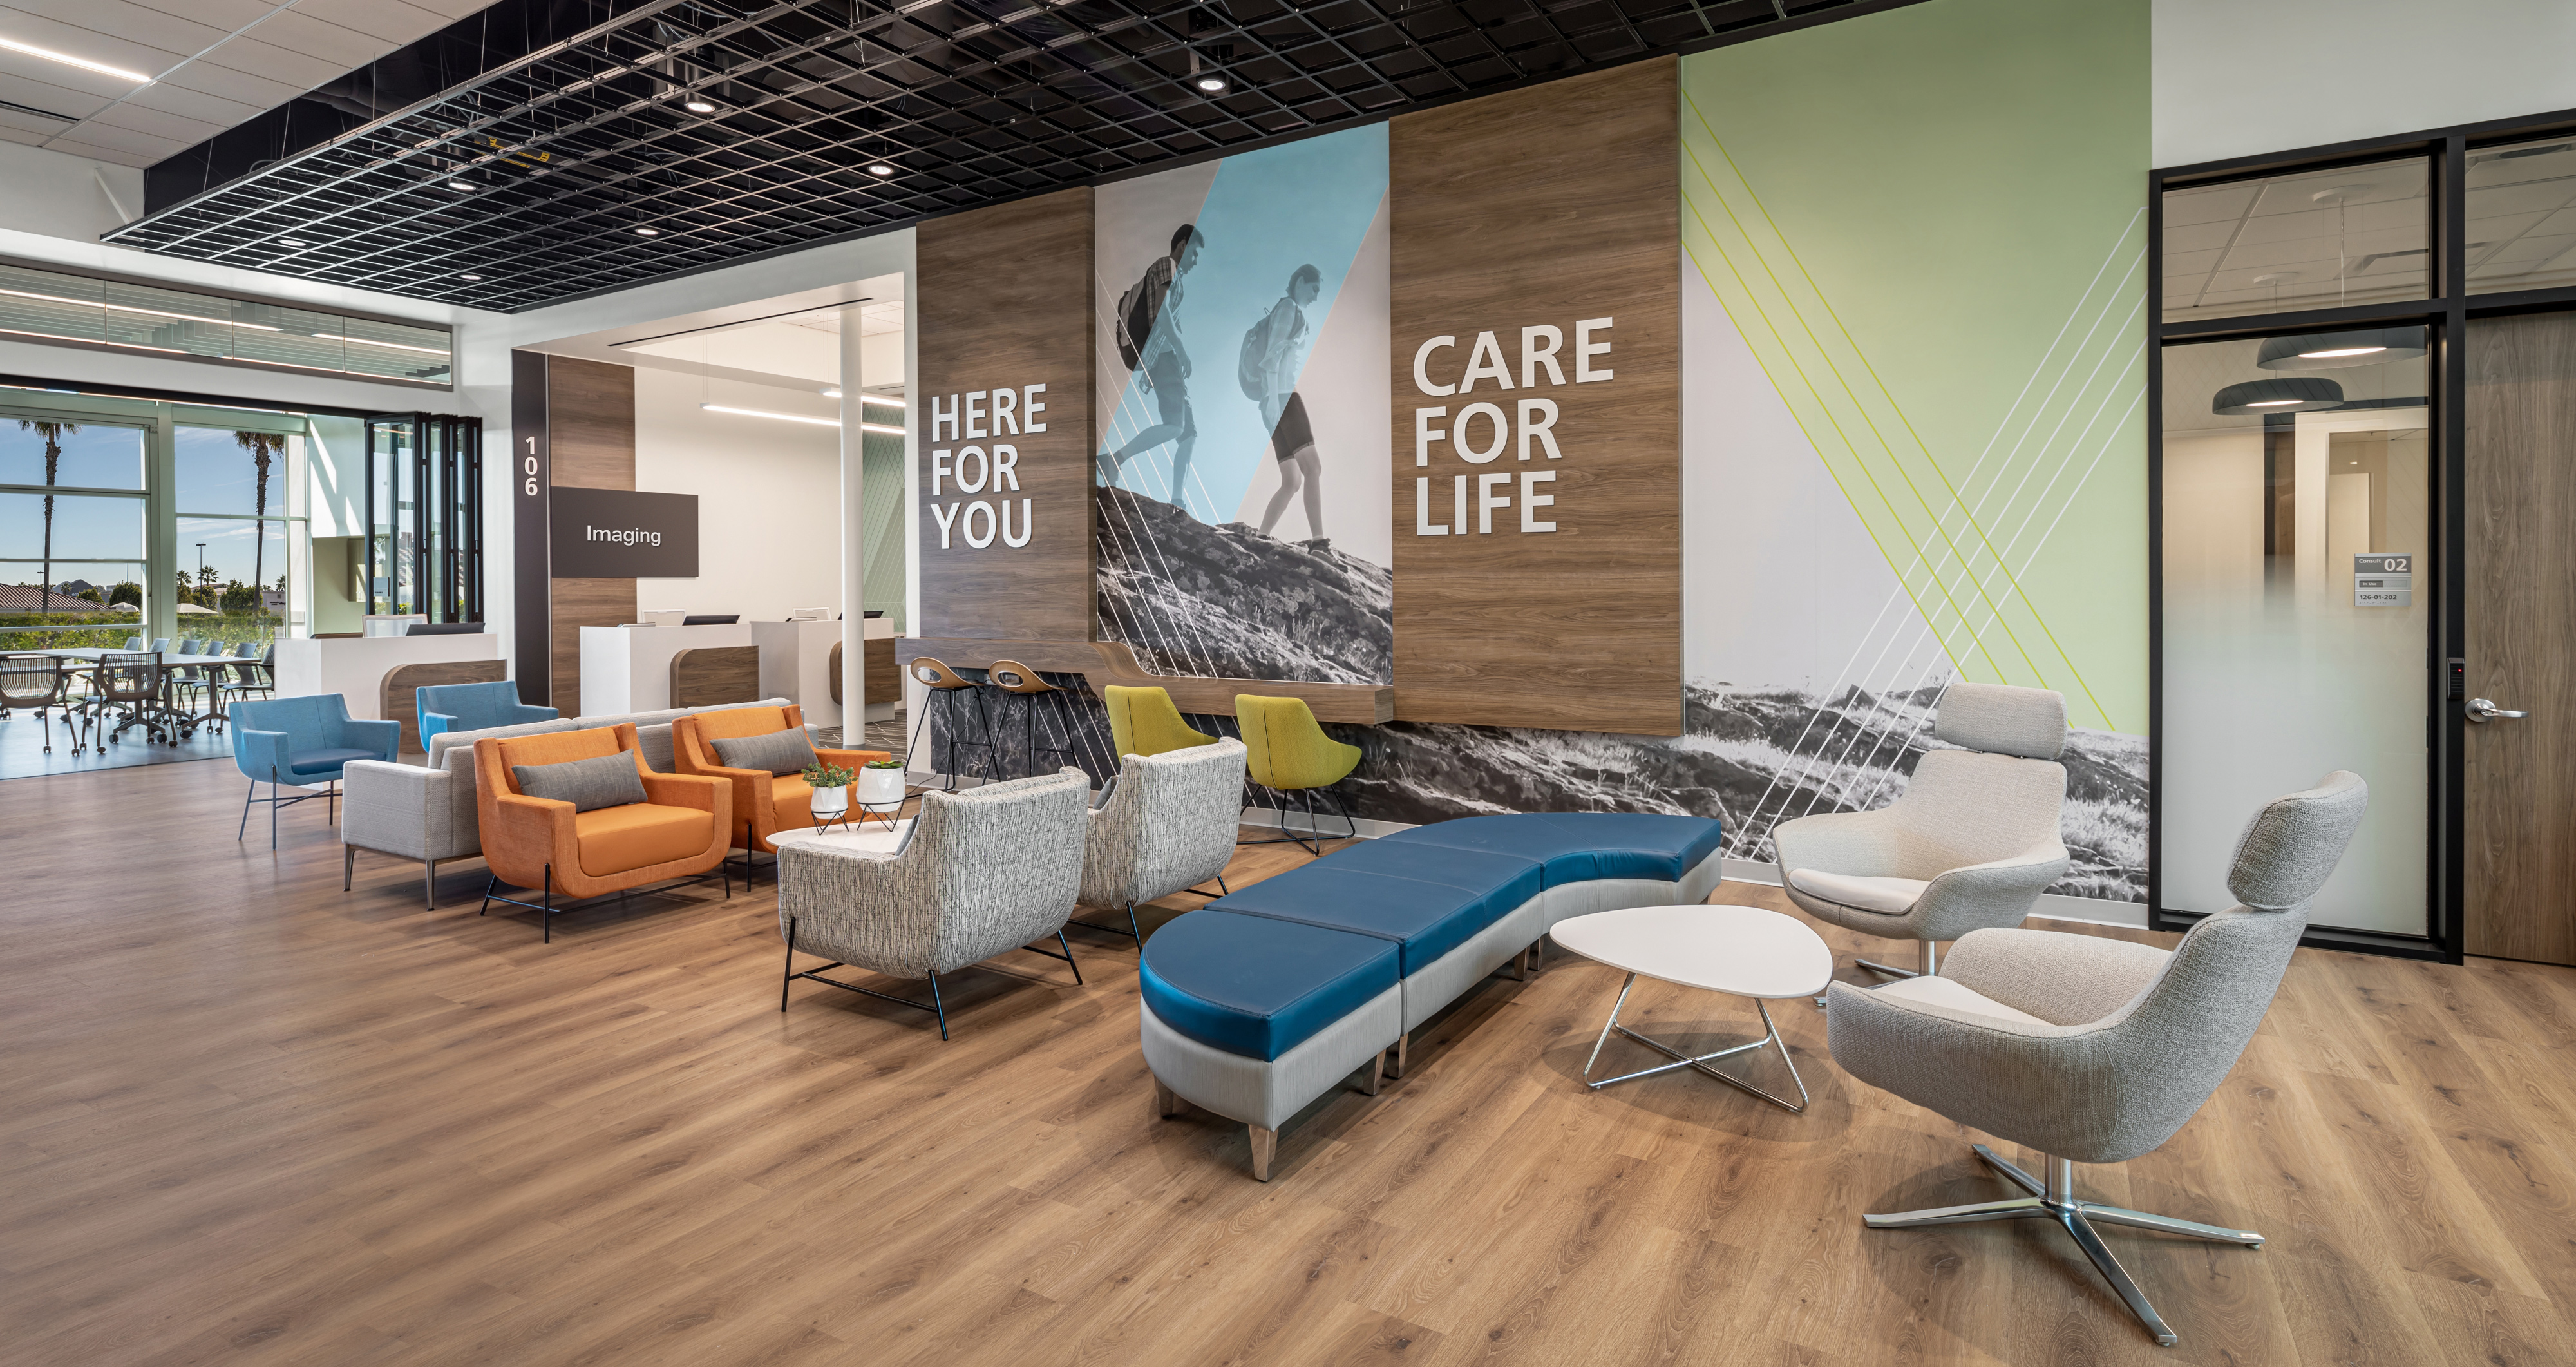 Amplify wall covering at Foothill Ranch Health Center